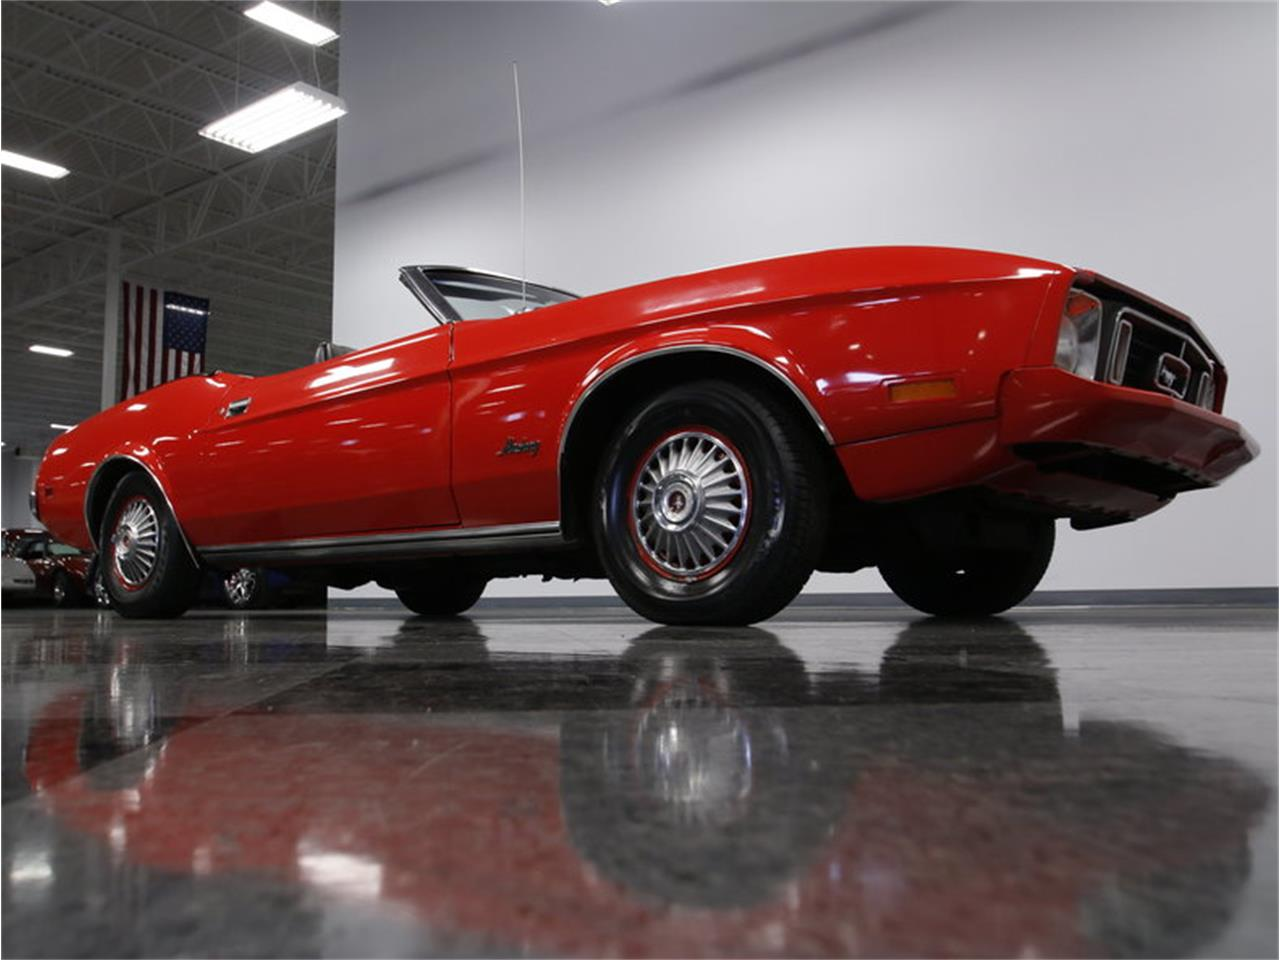 Large Picture of '73 Mustang 351 Cobra Jet located in North Carolina Offered by Streetside Classics - Charlotte - KISW